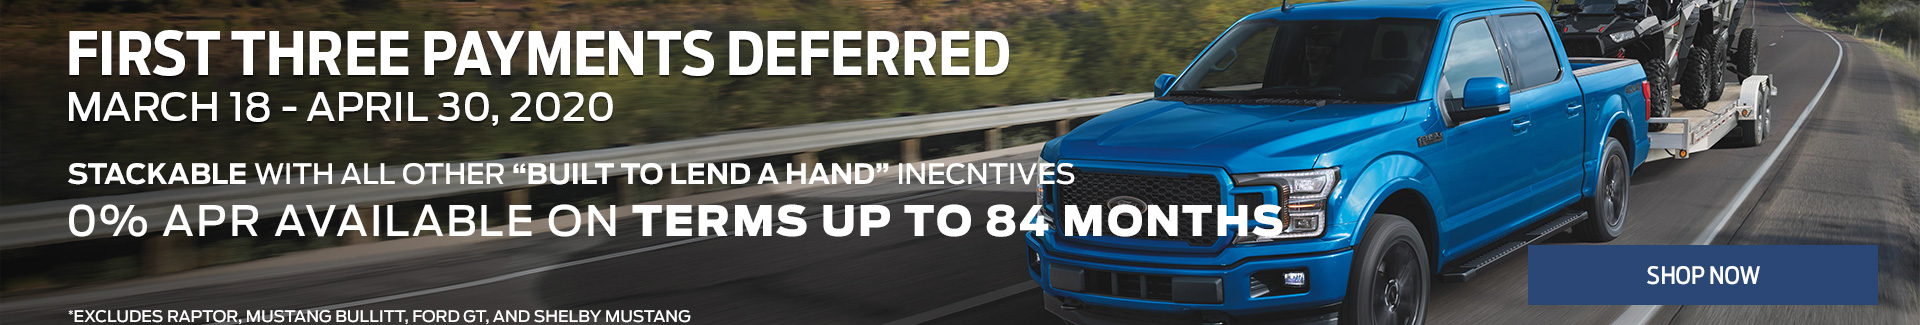 Ford Deferred Payments Srp